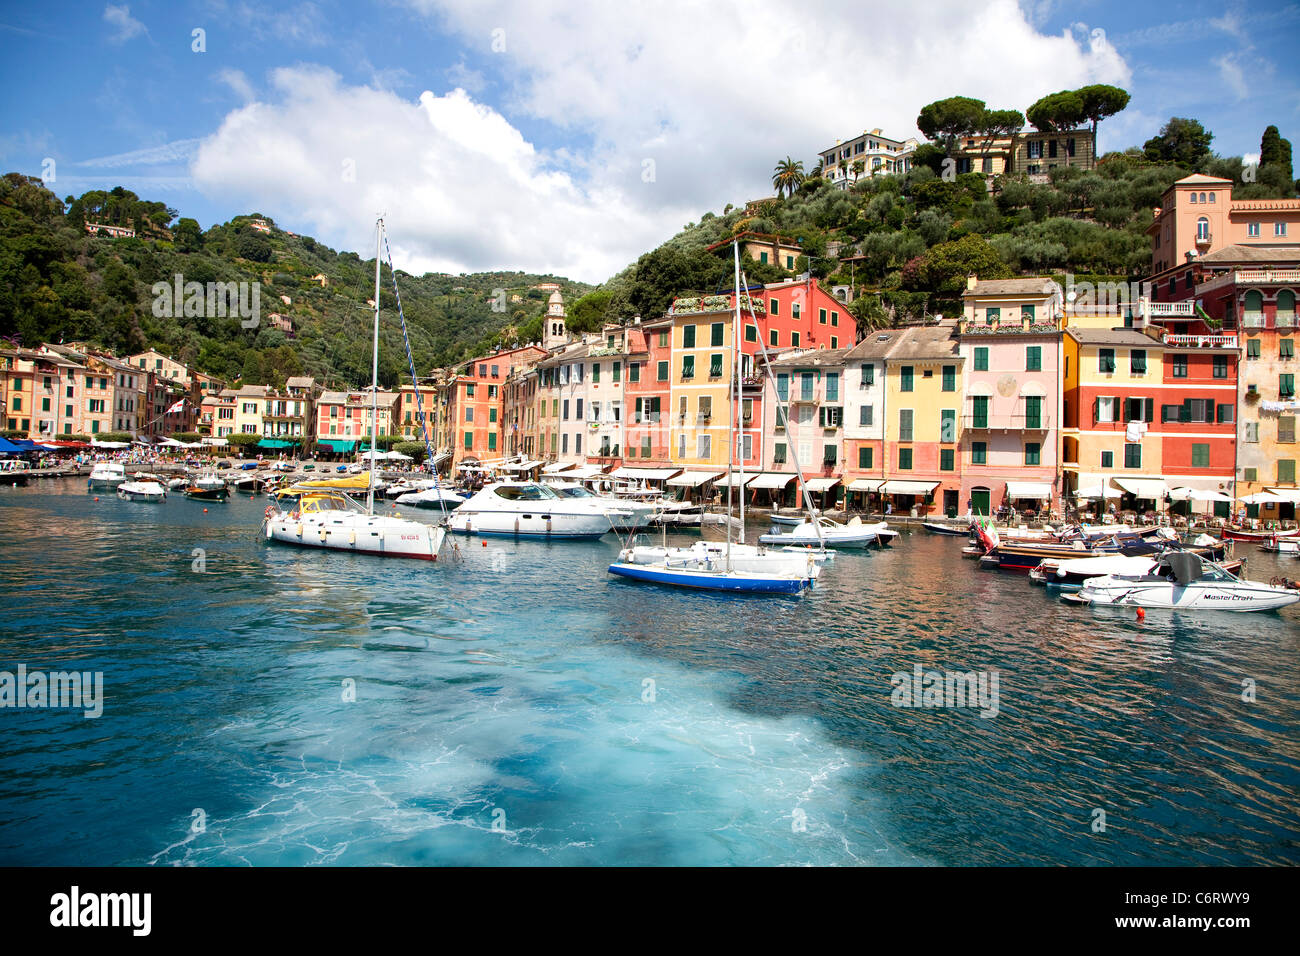 The famous town of Portofino, Liguria, Italy, its port with